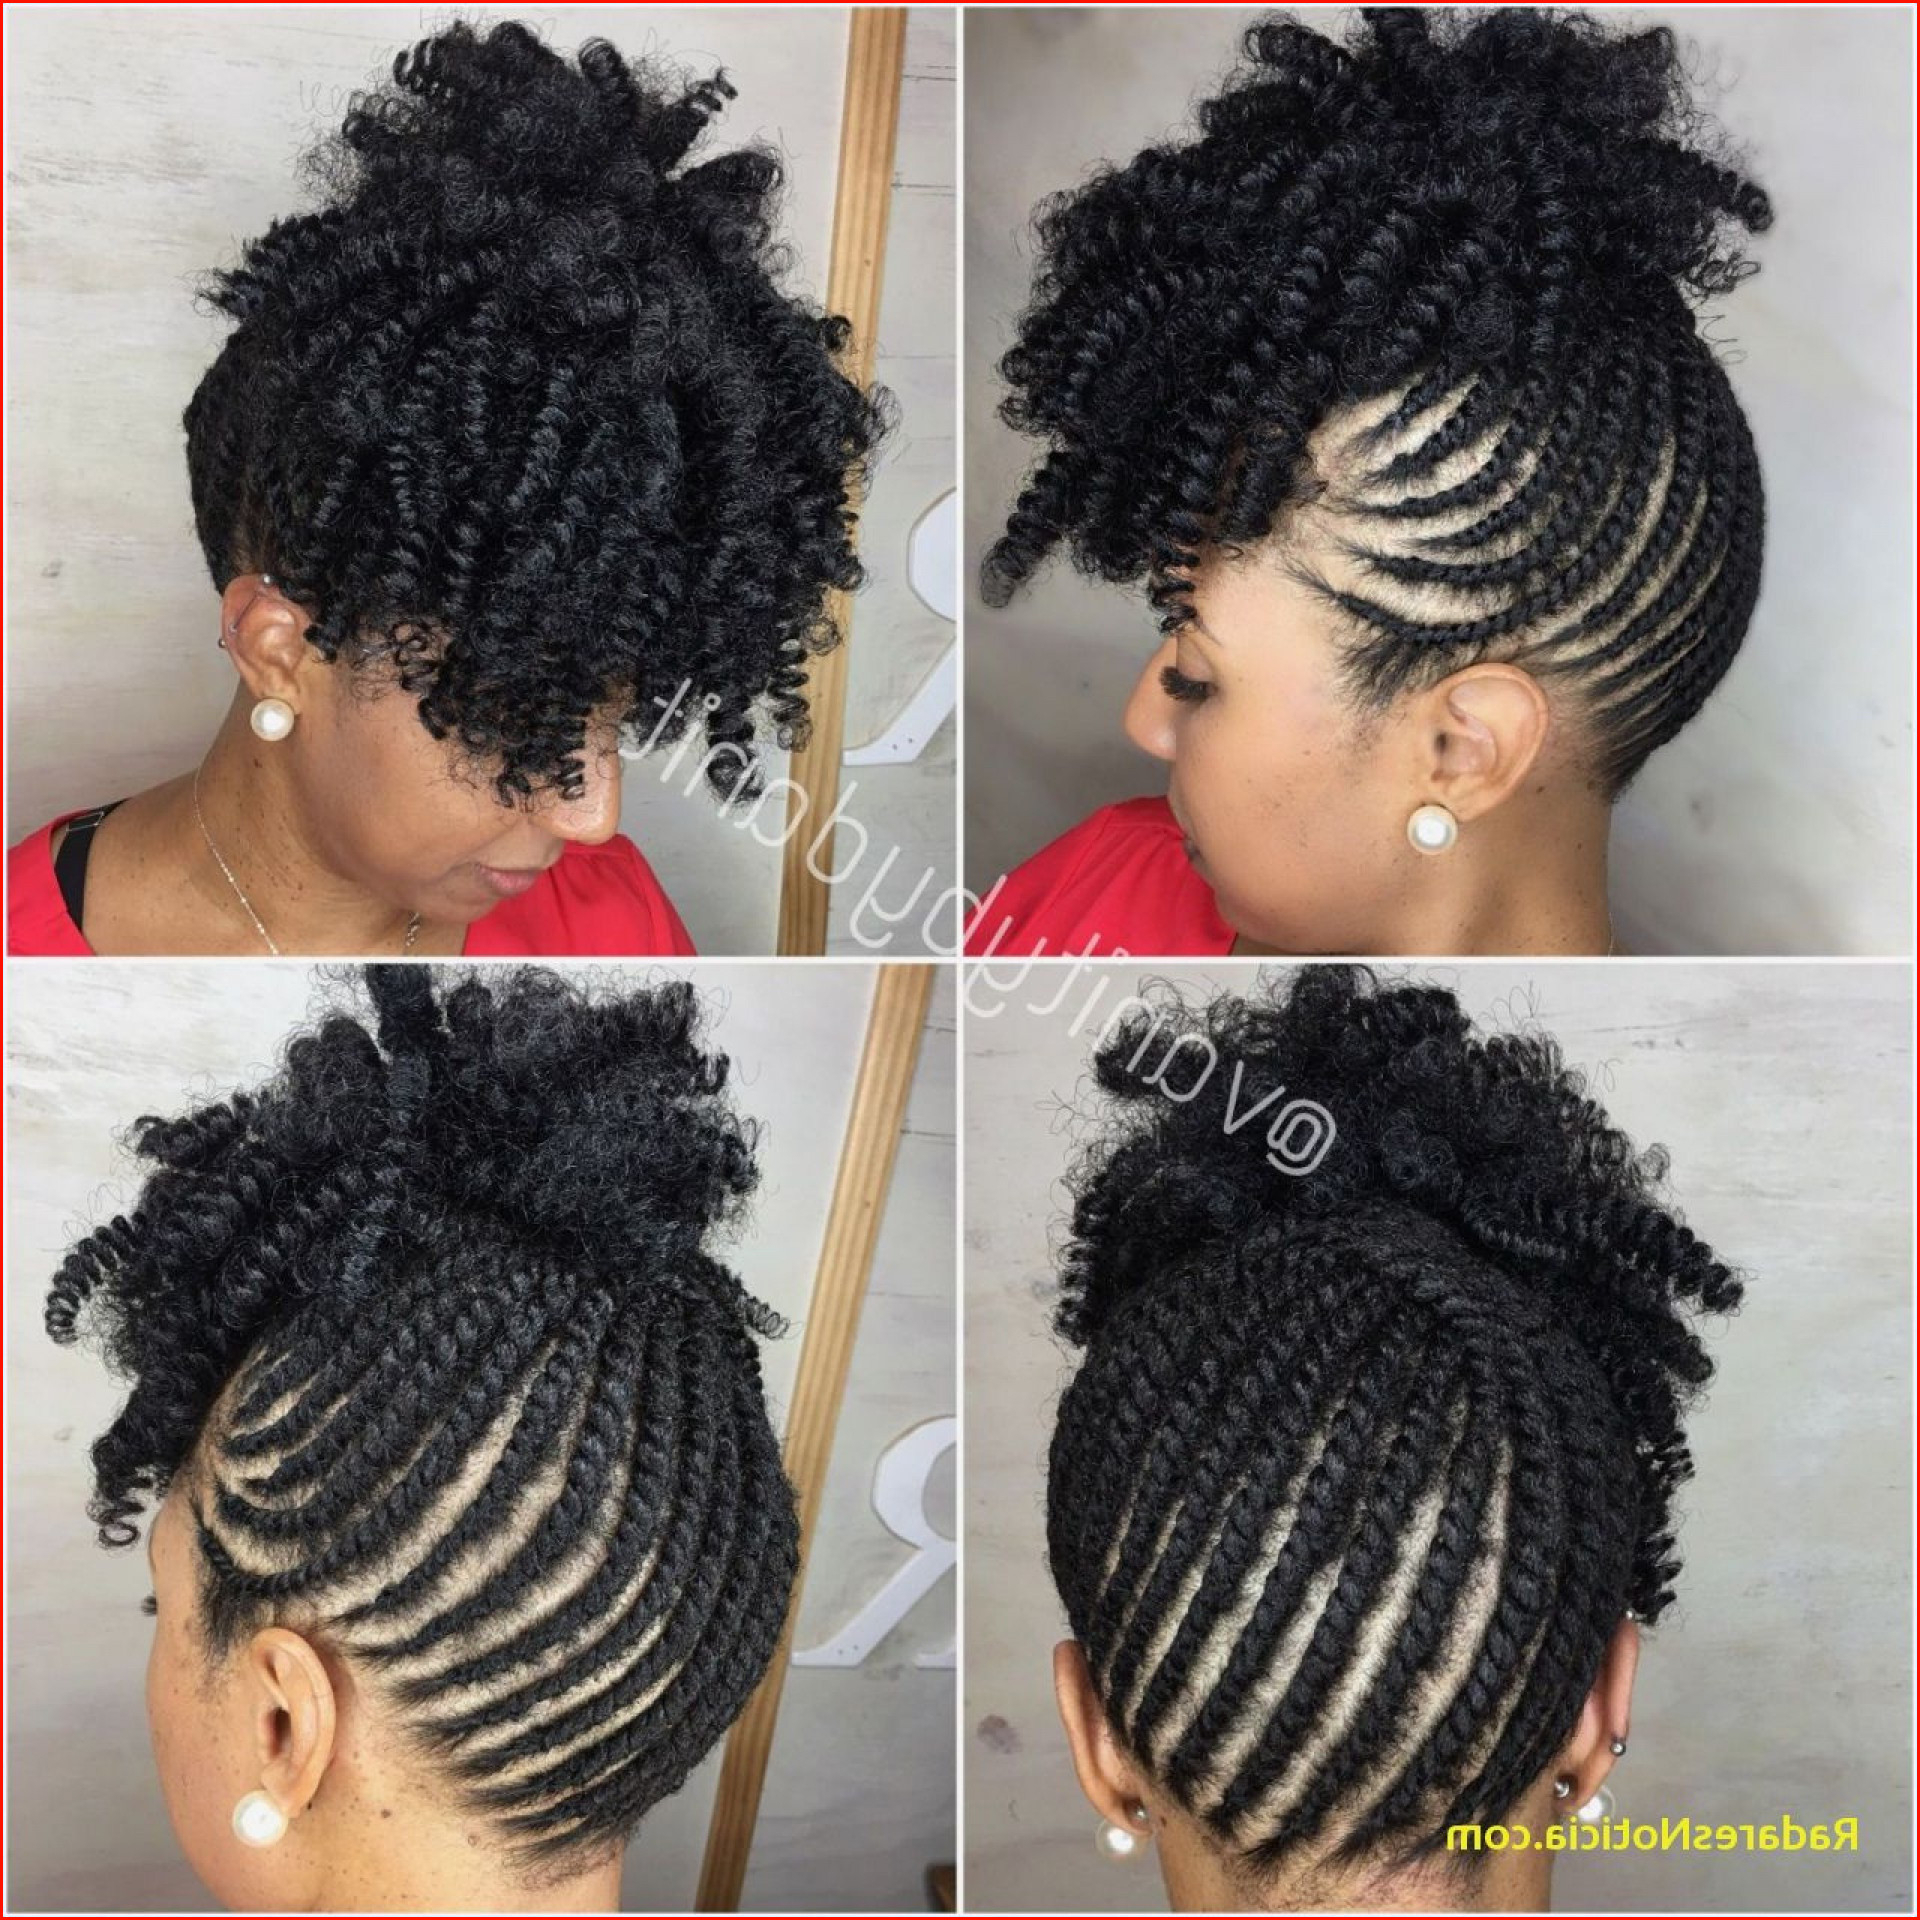 New Black Natural Braids Hairstyles Collection Of Braided In Current Faux Mohawk Hairstyles With Natural Tresses (View 15 of 20)